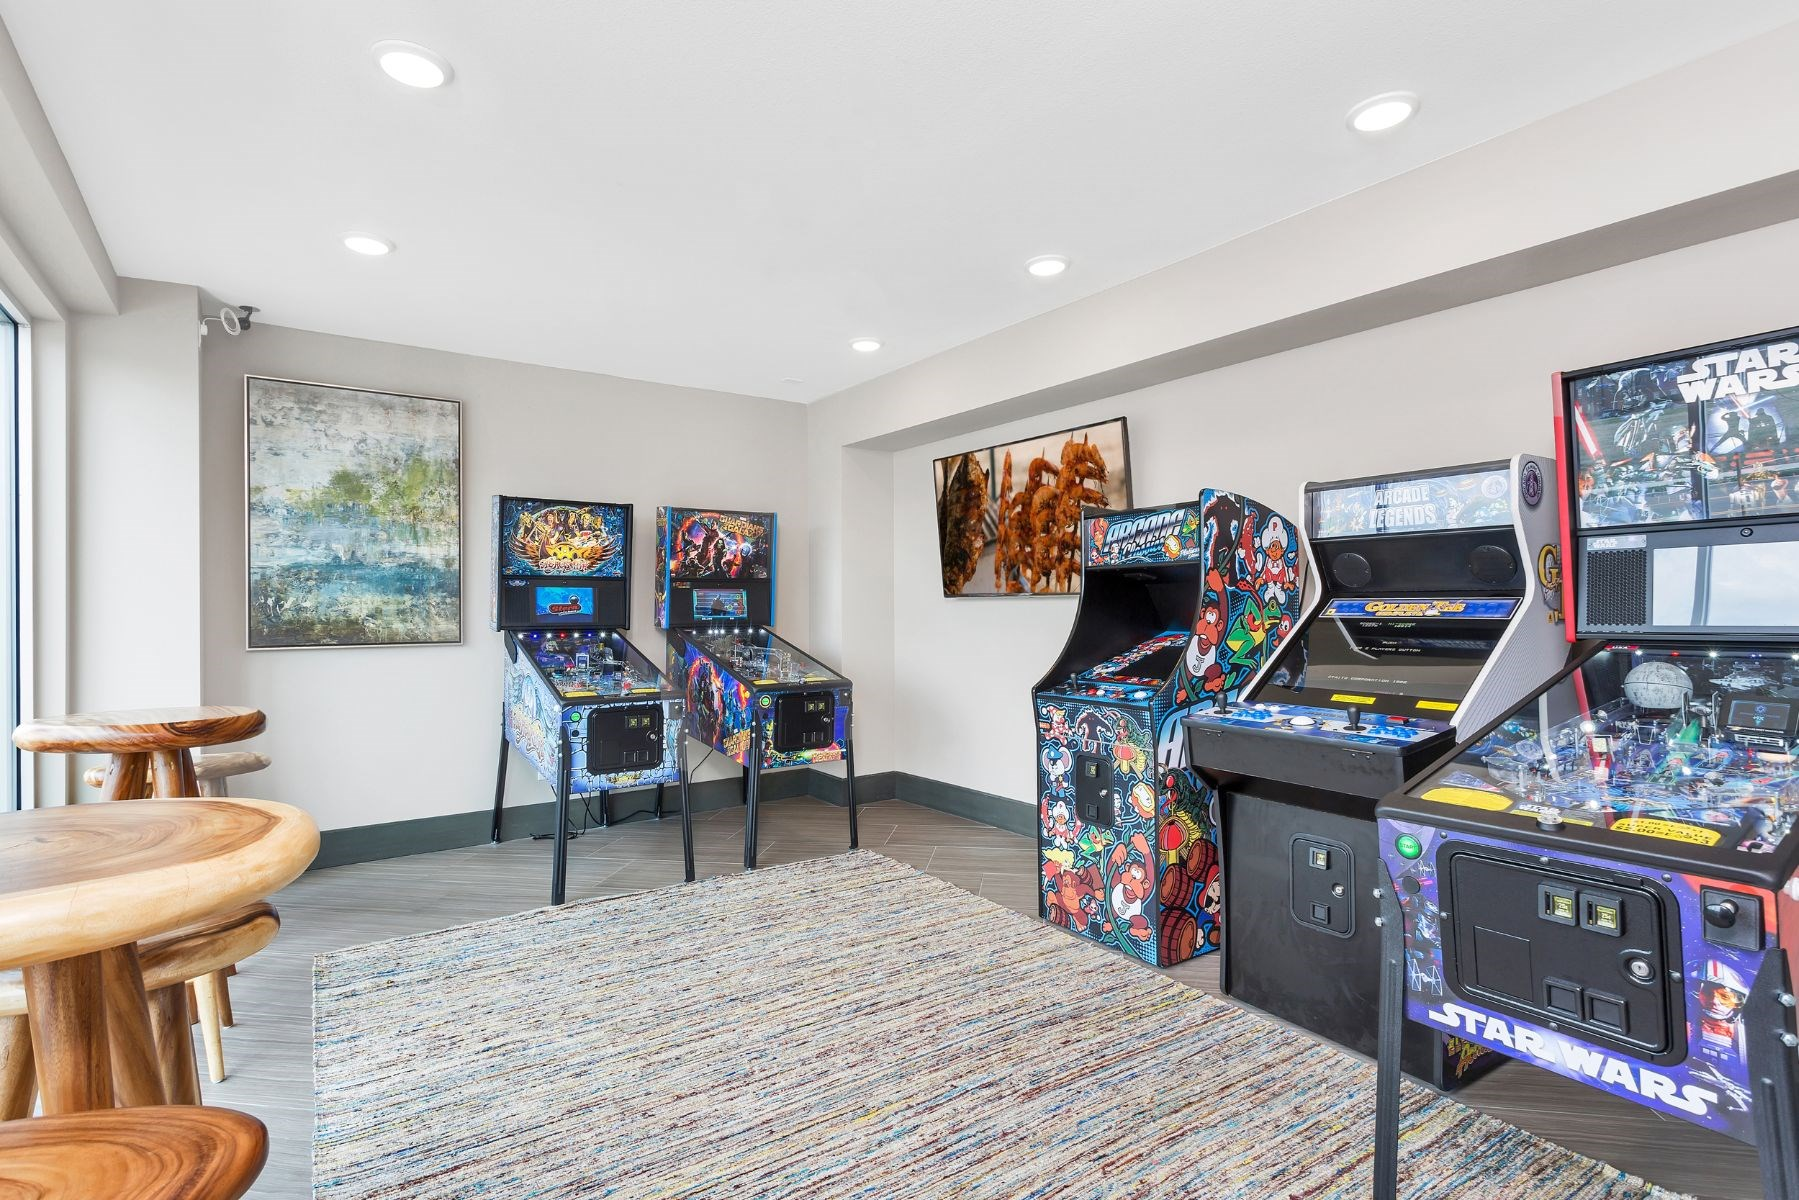 Westwood Green Apartments Clubhouse Pinball room with 5 machines